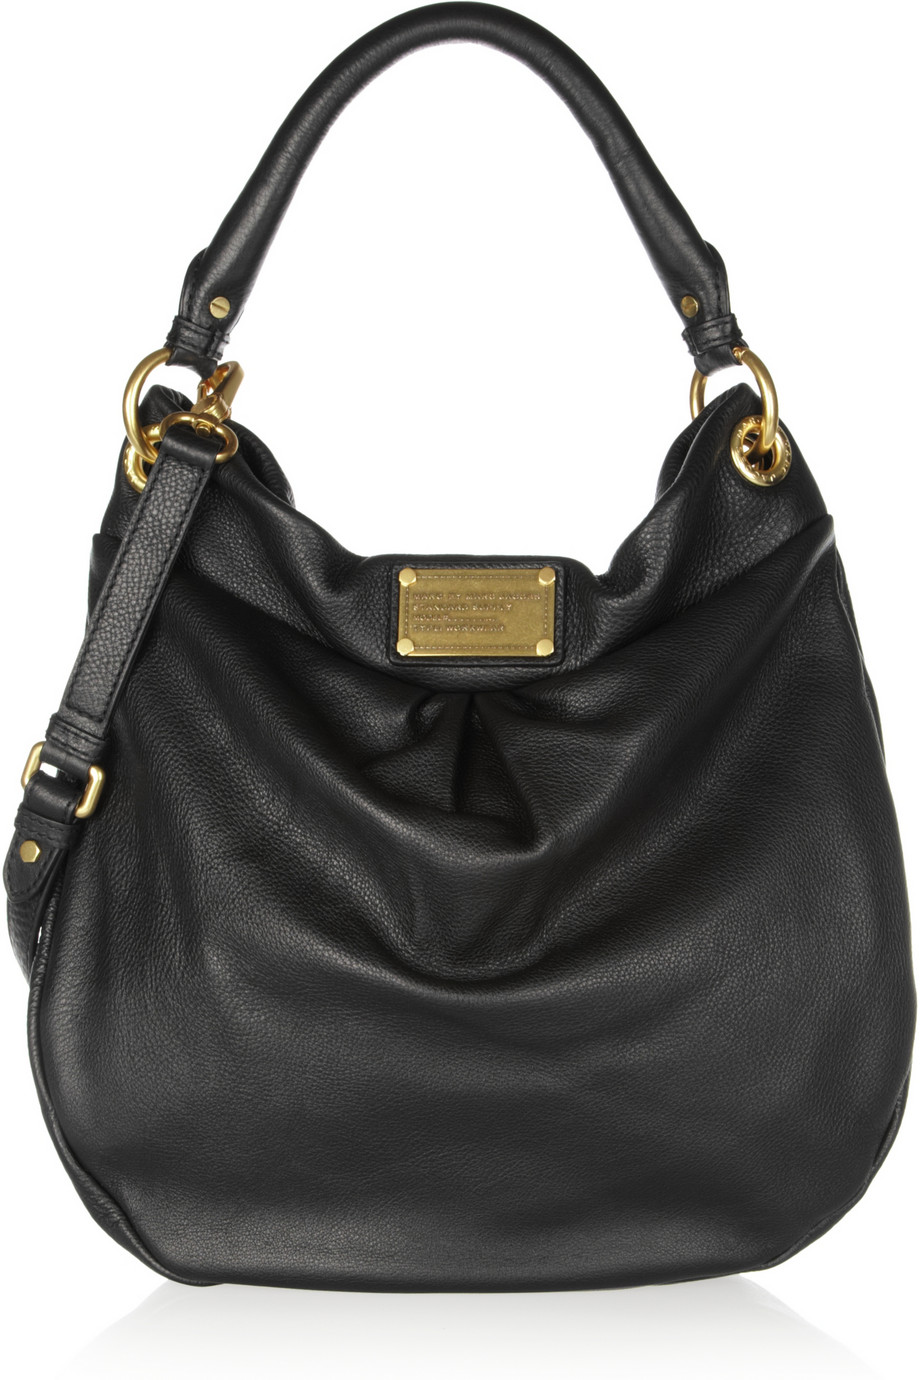 Marc by Marc Jacobs Classic Black Hobo - Bag at You